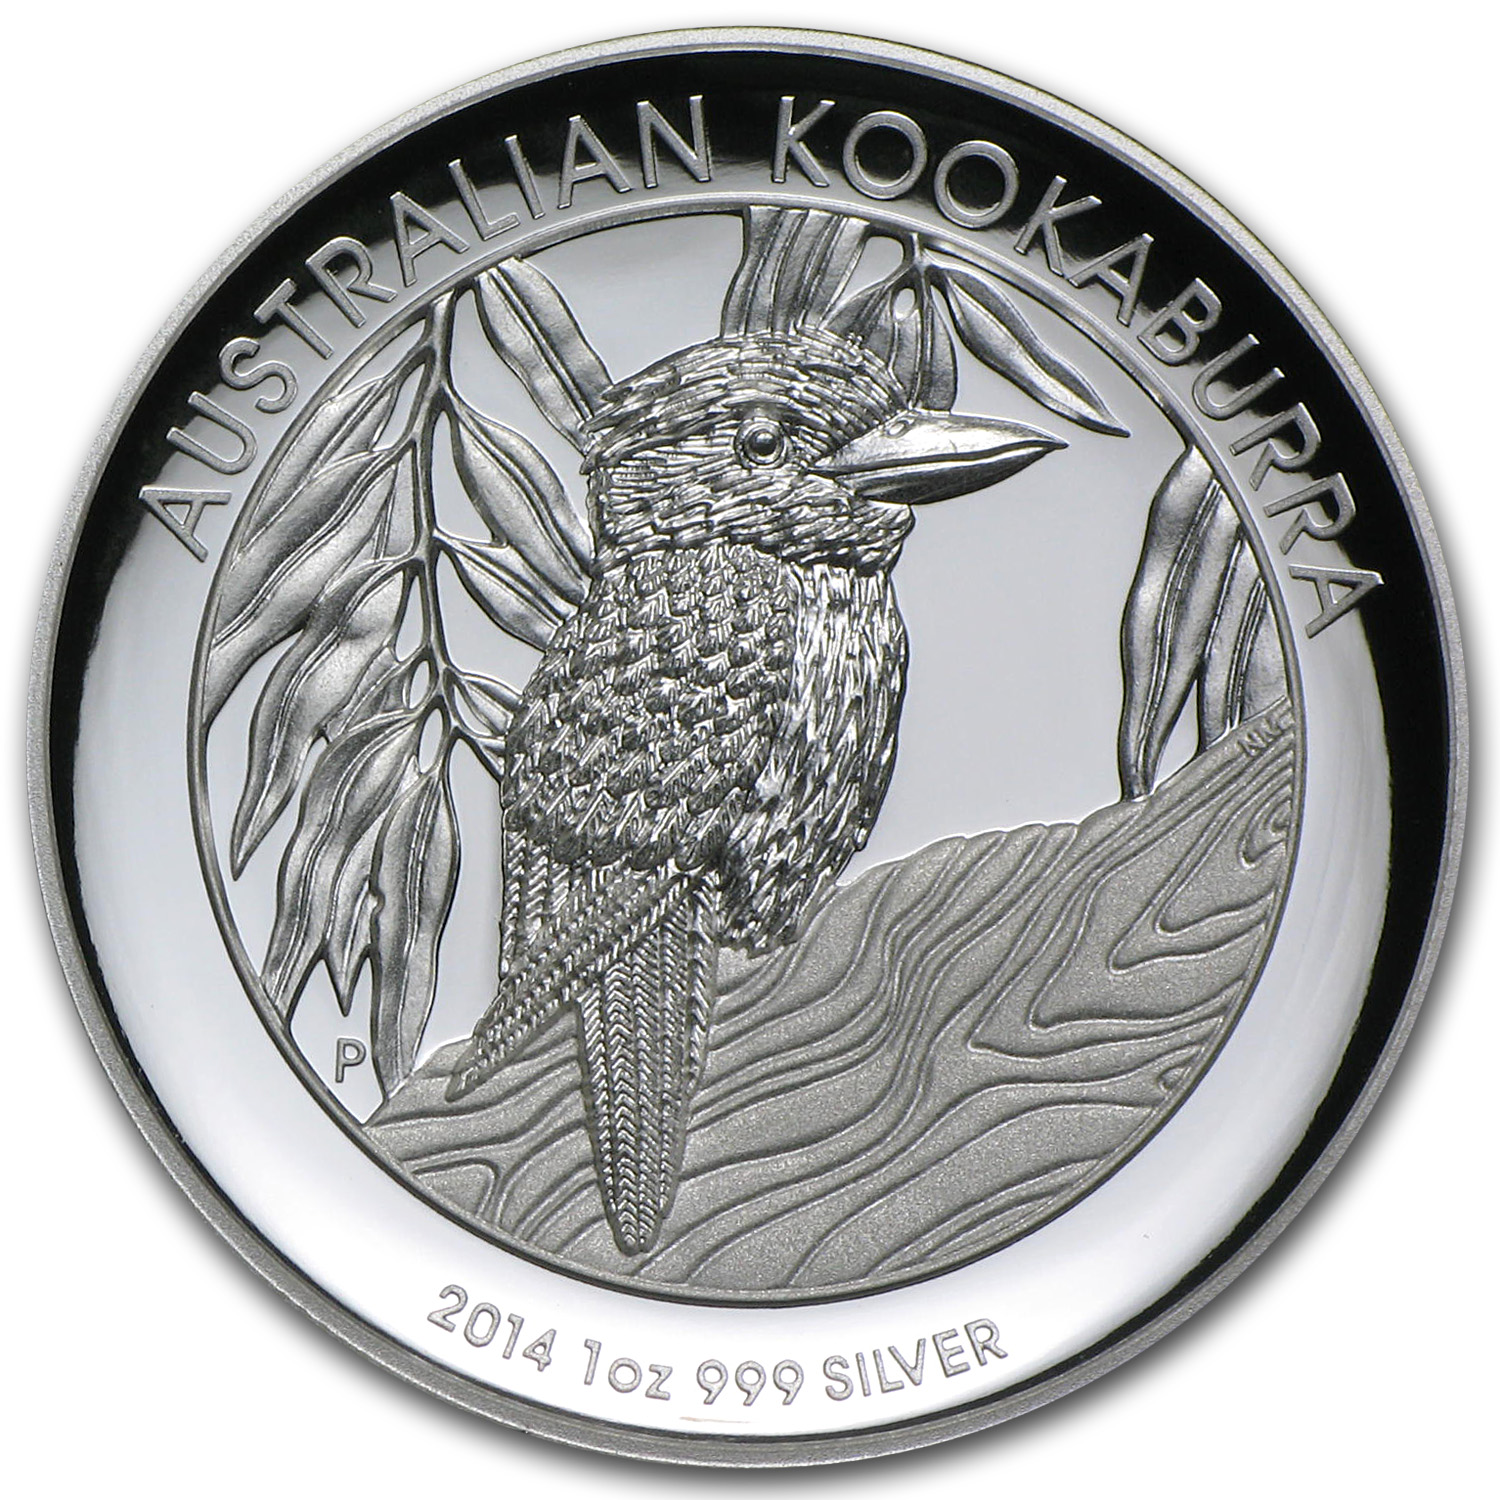 2014 1 oz Proof Silver Australian High Relief Kookaburra